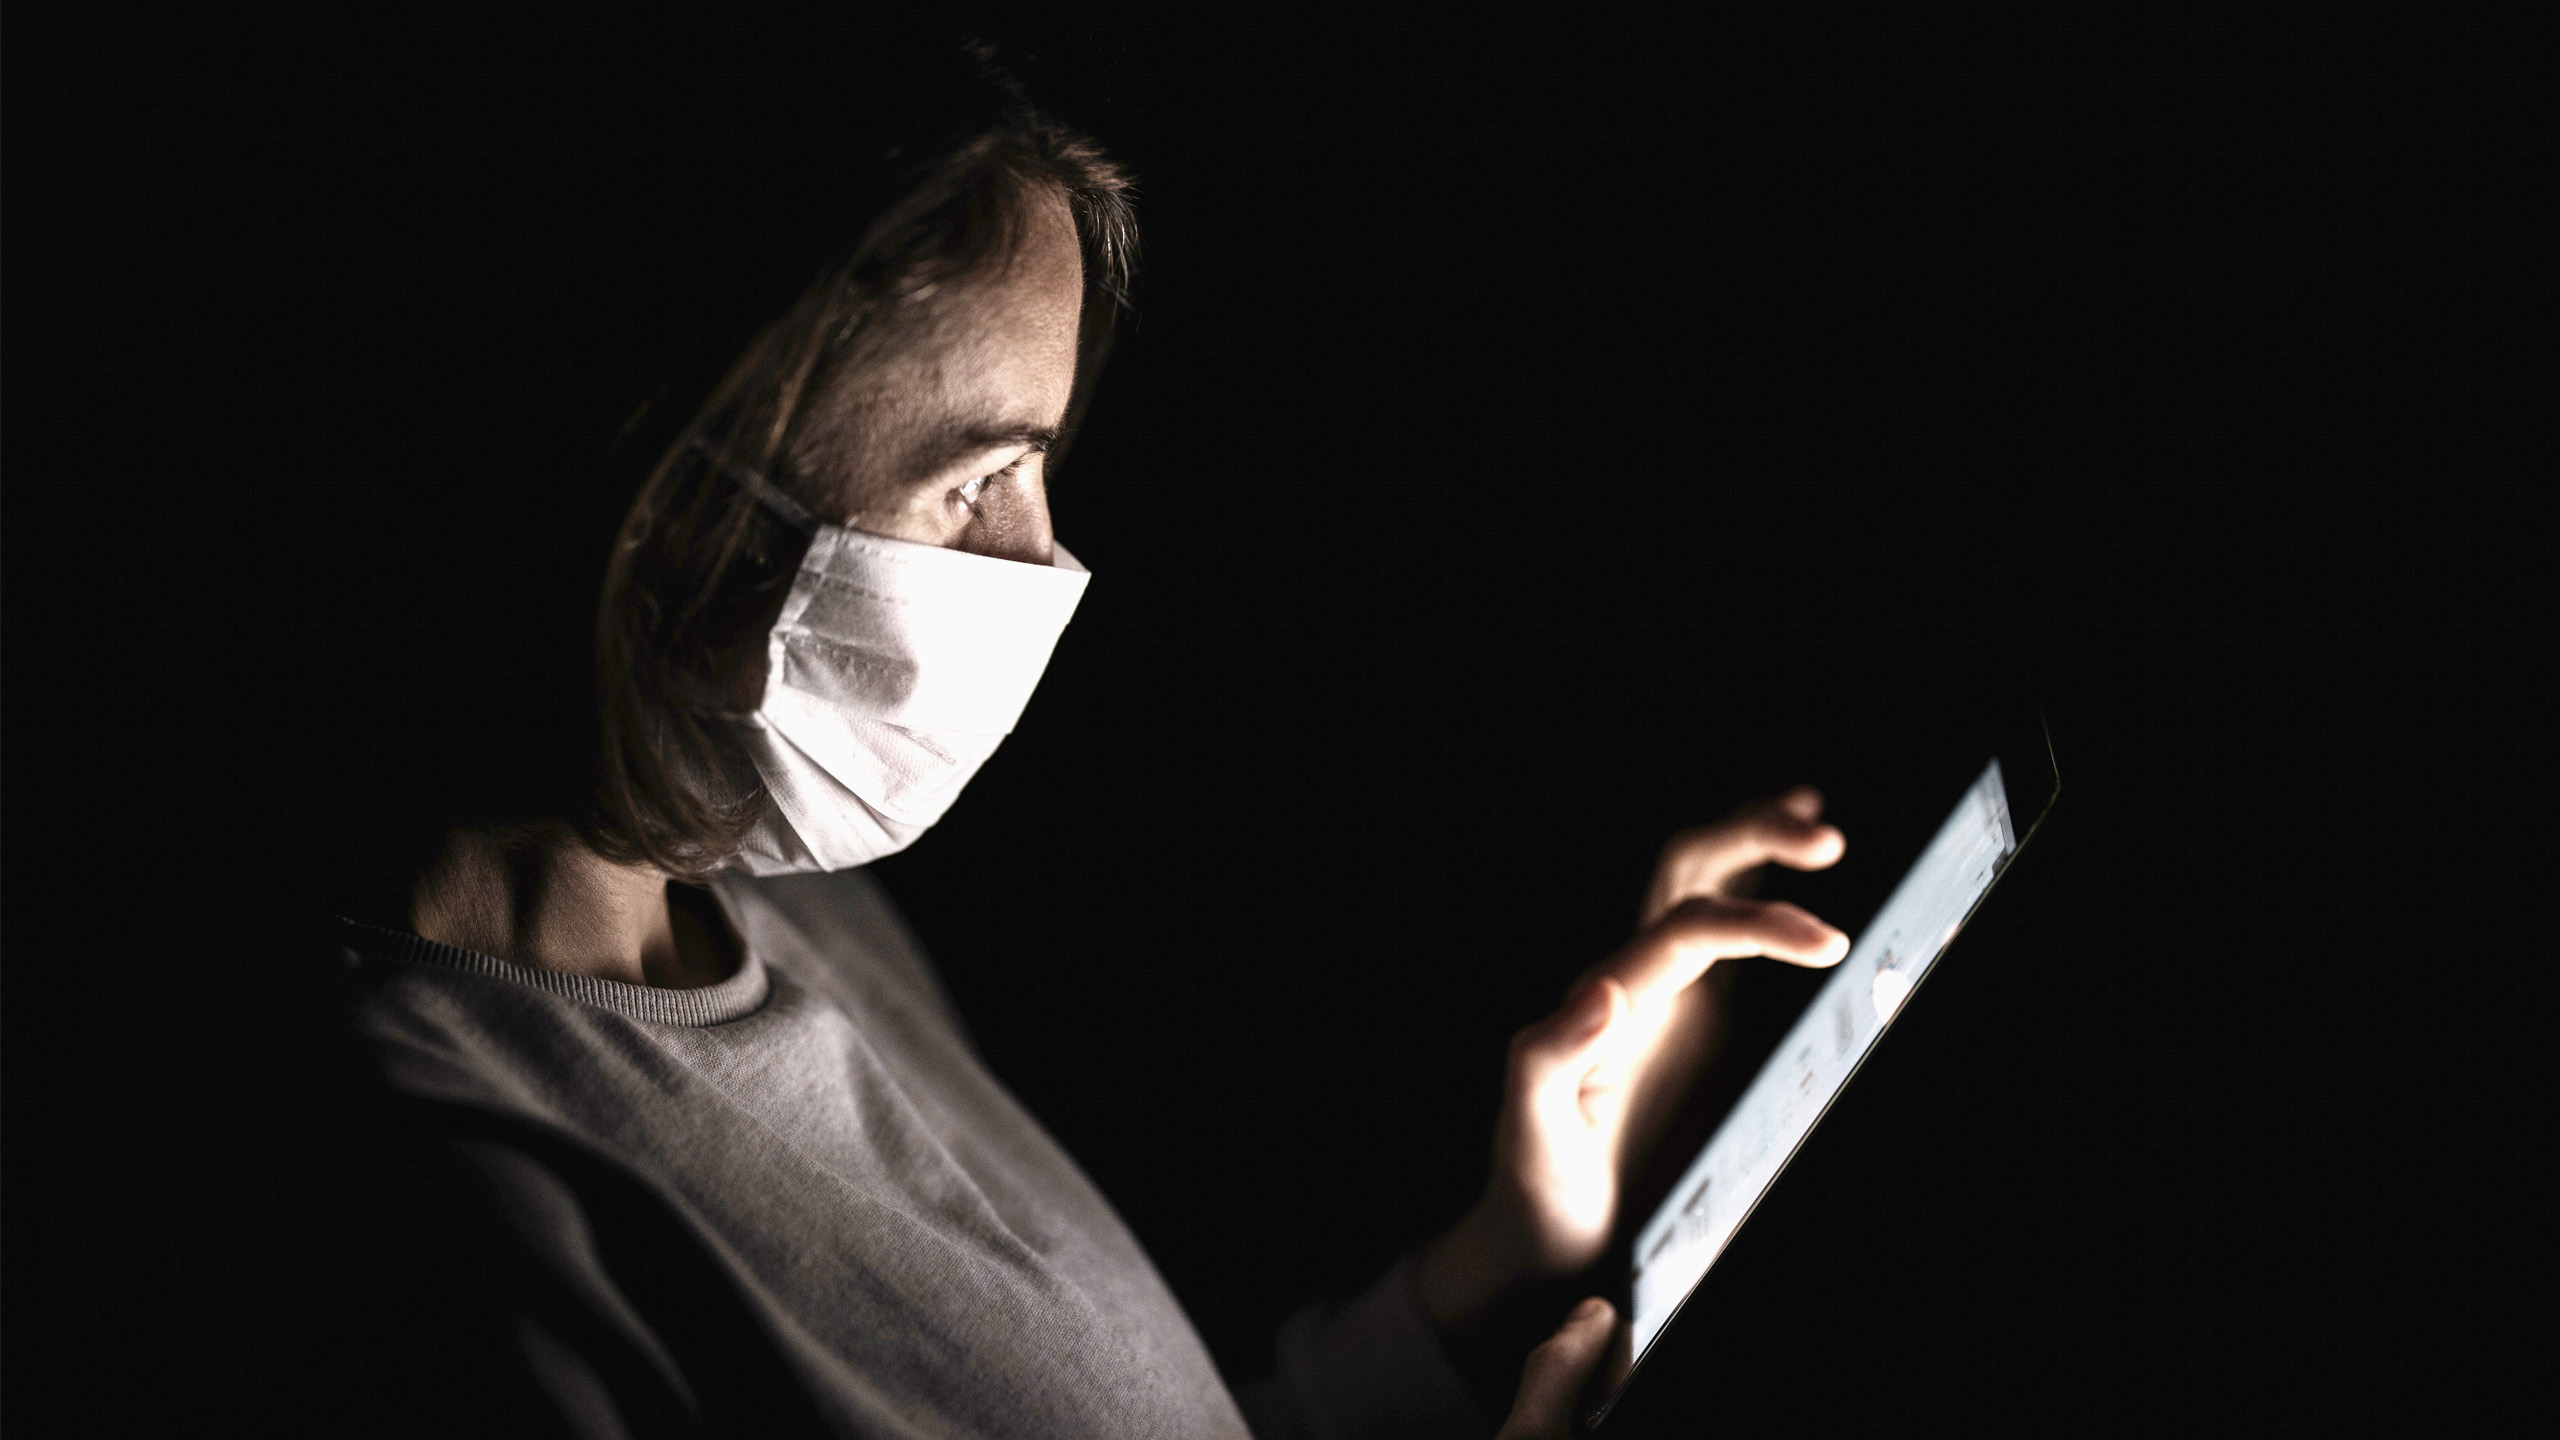 Woman wearing a face mask browsing the internet